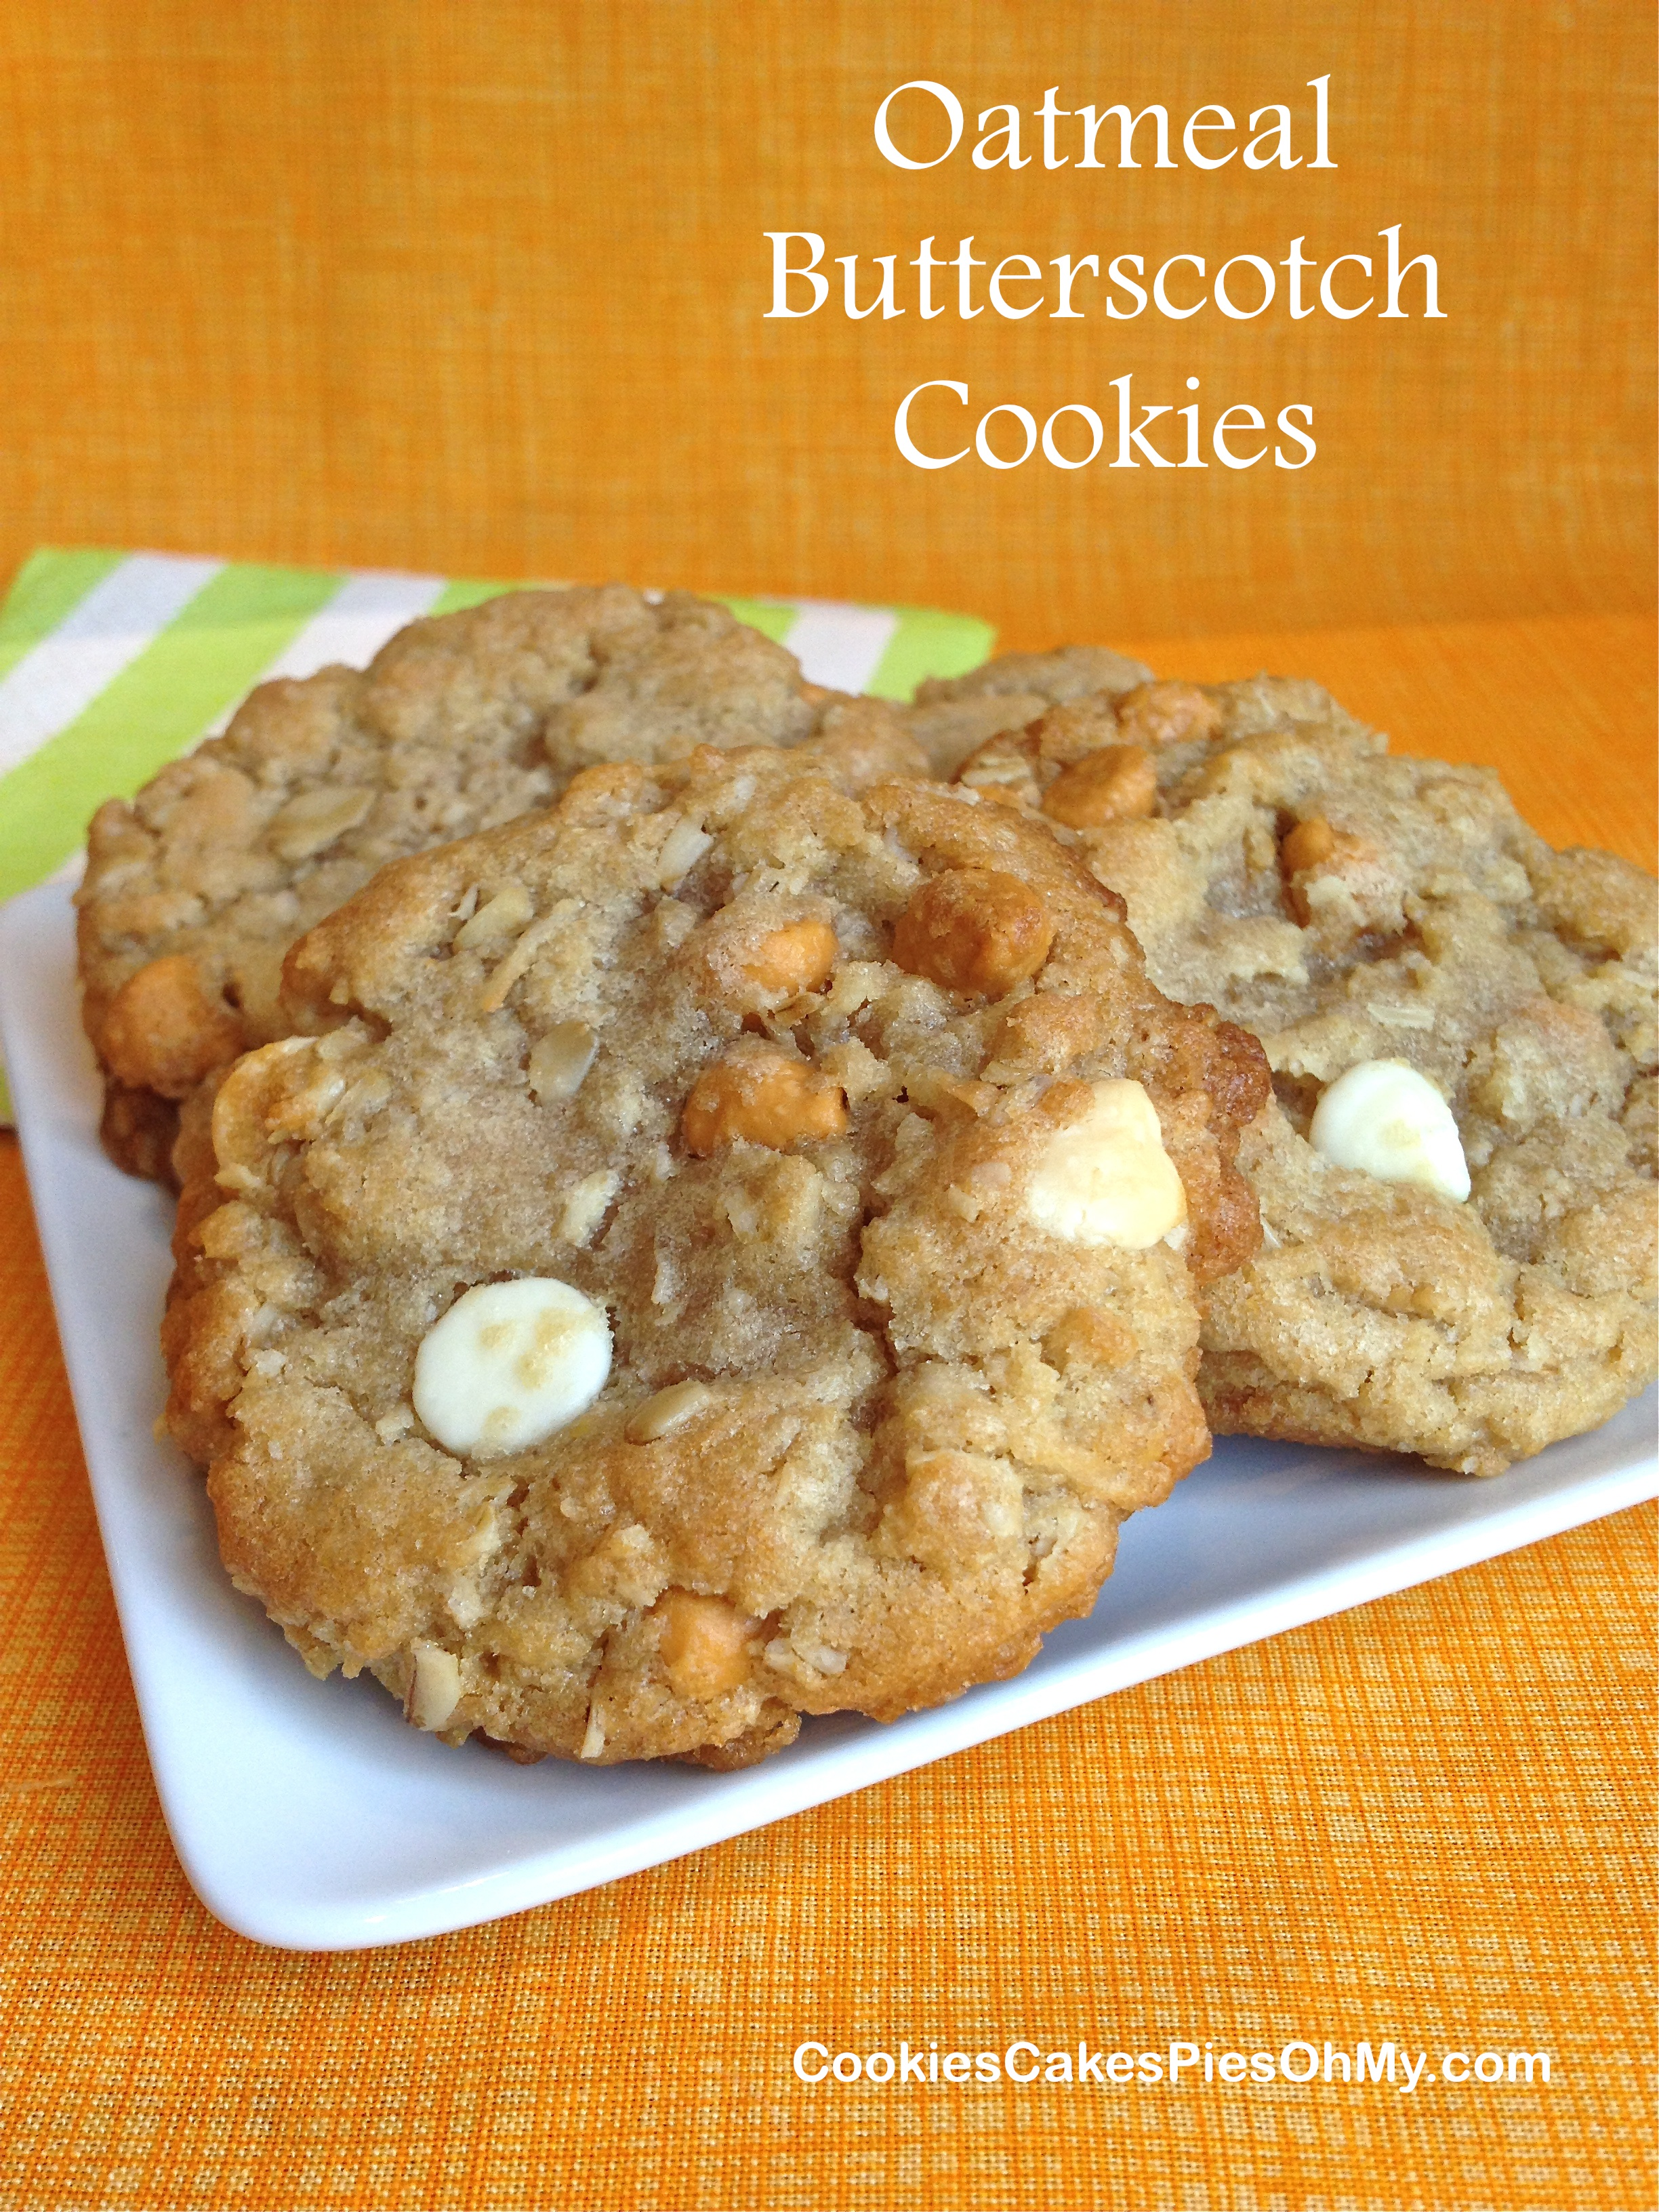 Oatmeal Butterscotch Cookies | CookiesCakesPiesOhMy Oatmeal Butterscotch Cookies